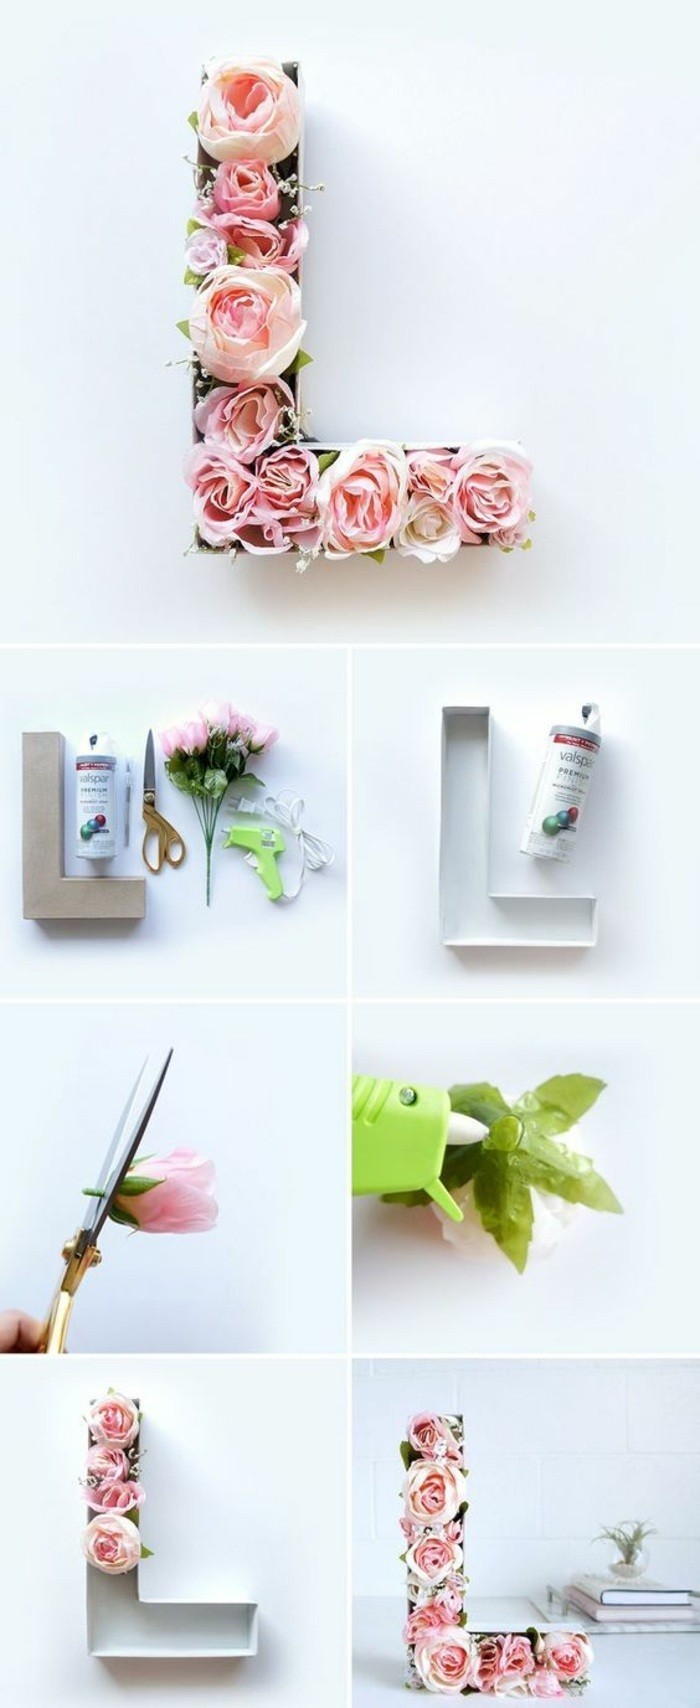 diy tutorial, step by step, the letter l, filled with faux roses, wall art ideas for living room, hanging on a white wall